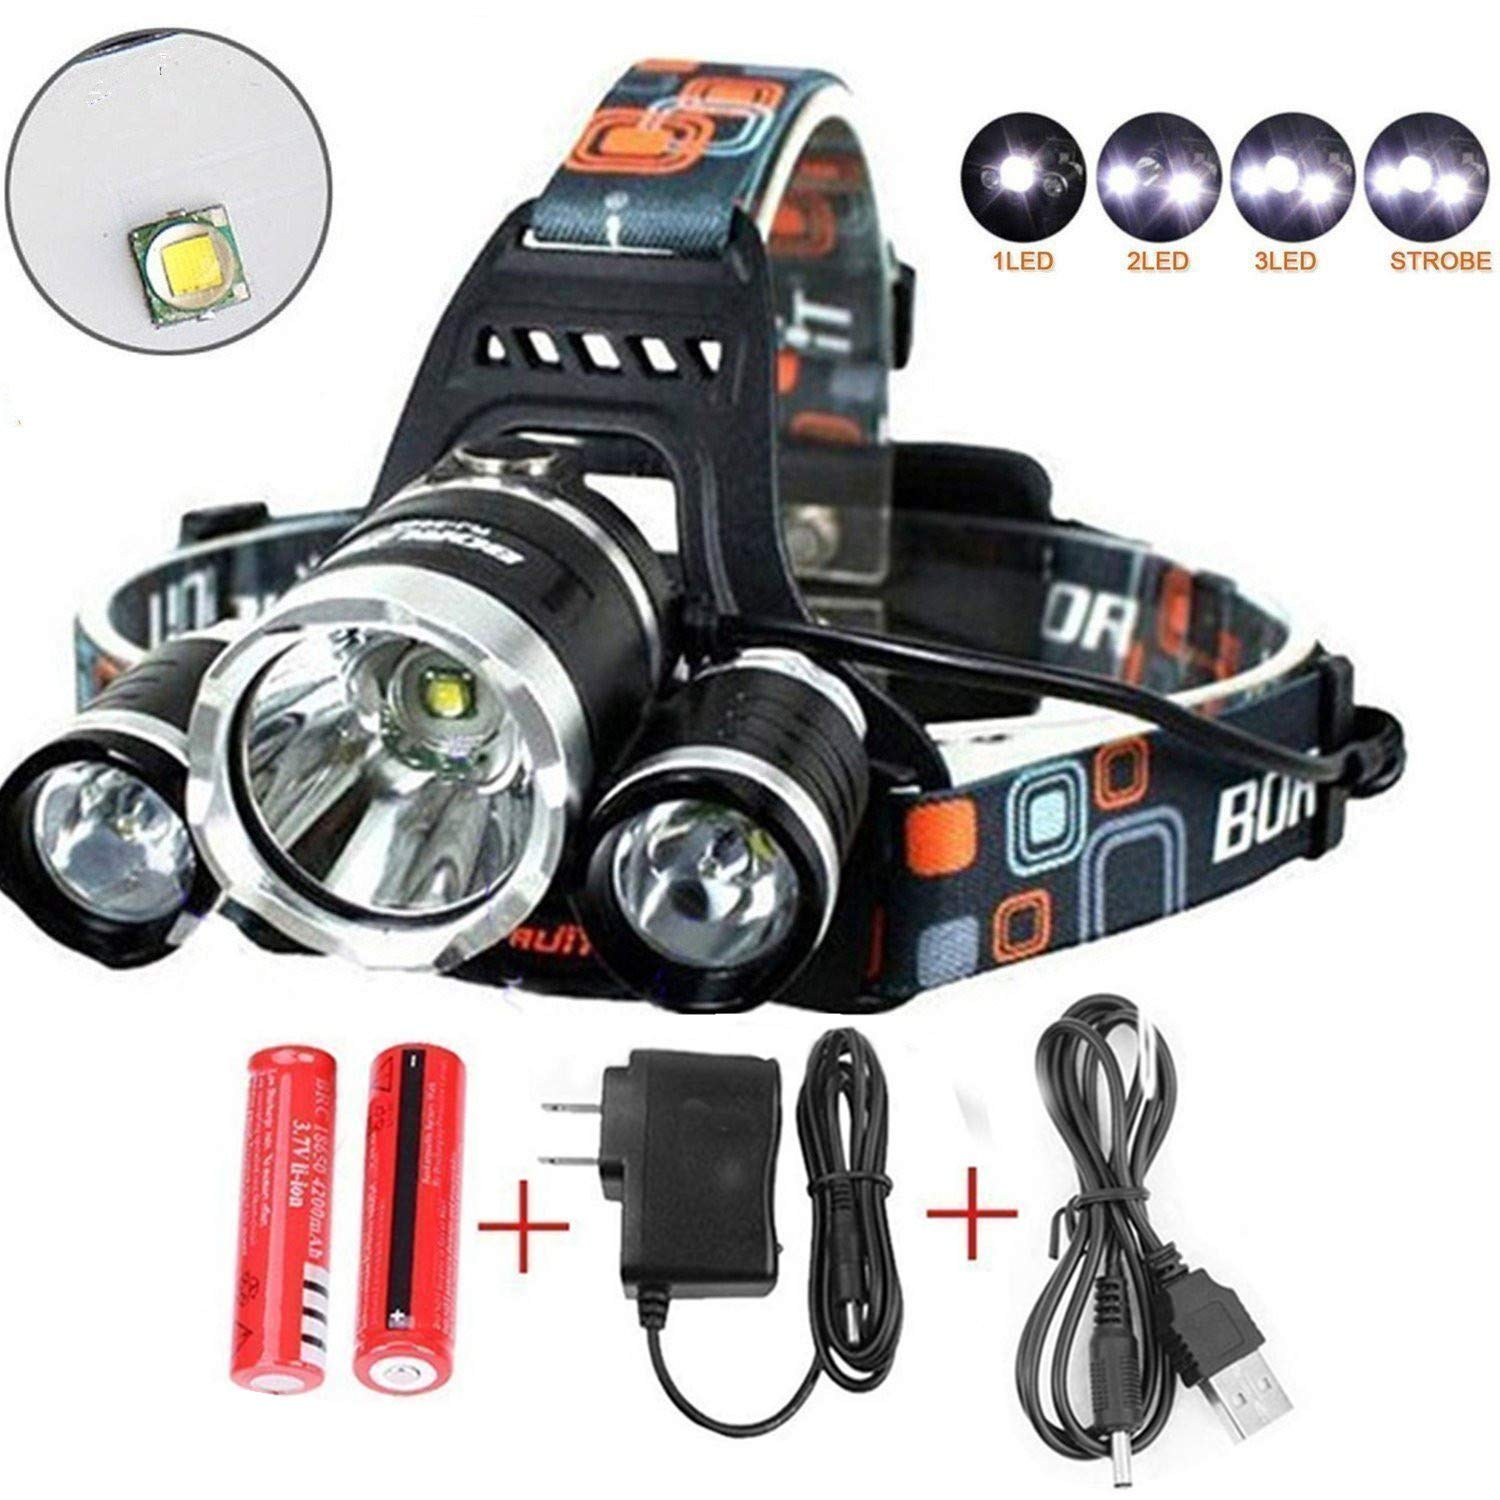 Brightest and Best 8000 Lumen Bright Headlamp Flashlight, IMPROVED LED with Rechargeable Batteries for Reading Outdoor Running Camping Fishing Walking - Waterproof Headlight …